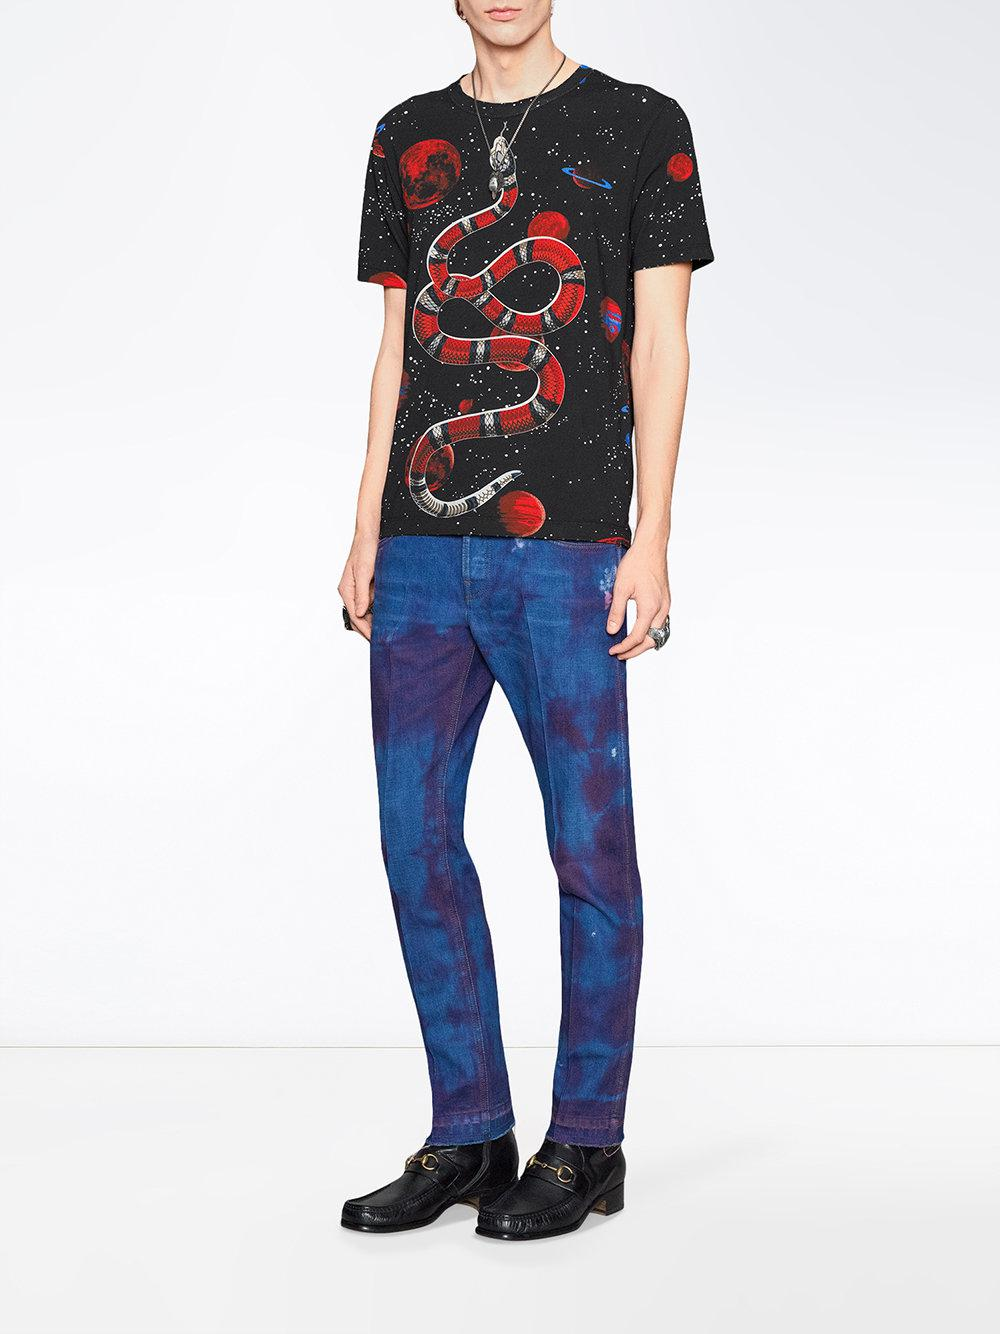 92f360ce495 Lyst - Gucci Space Snake-print Cotton T-shirt in Black for Men